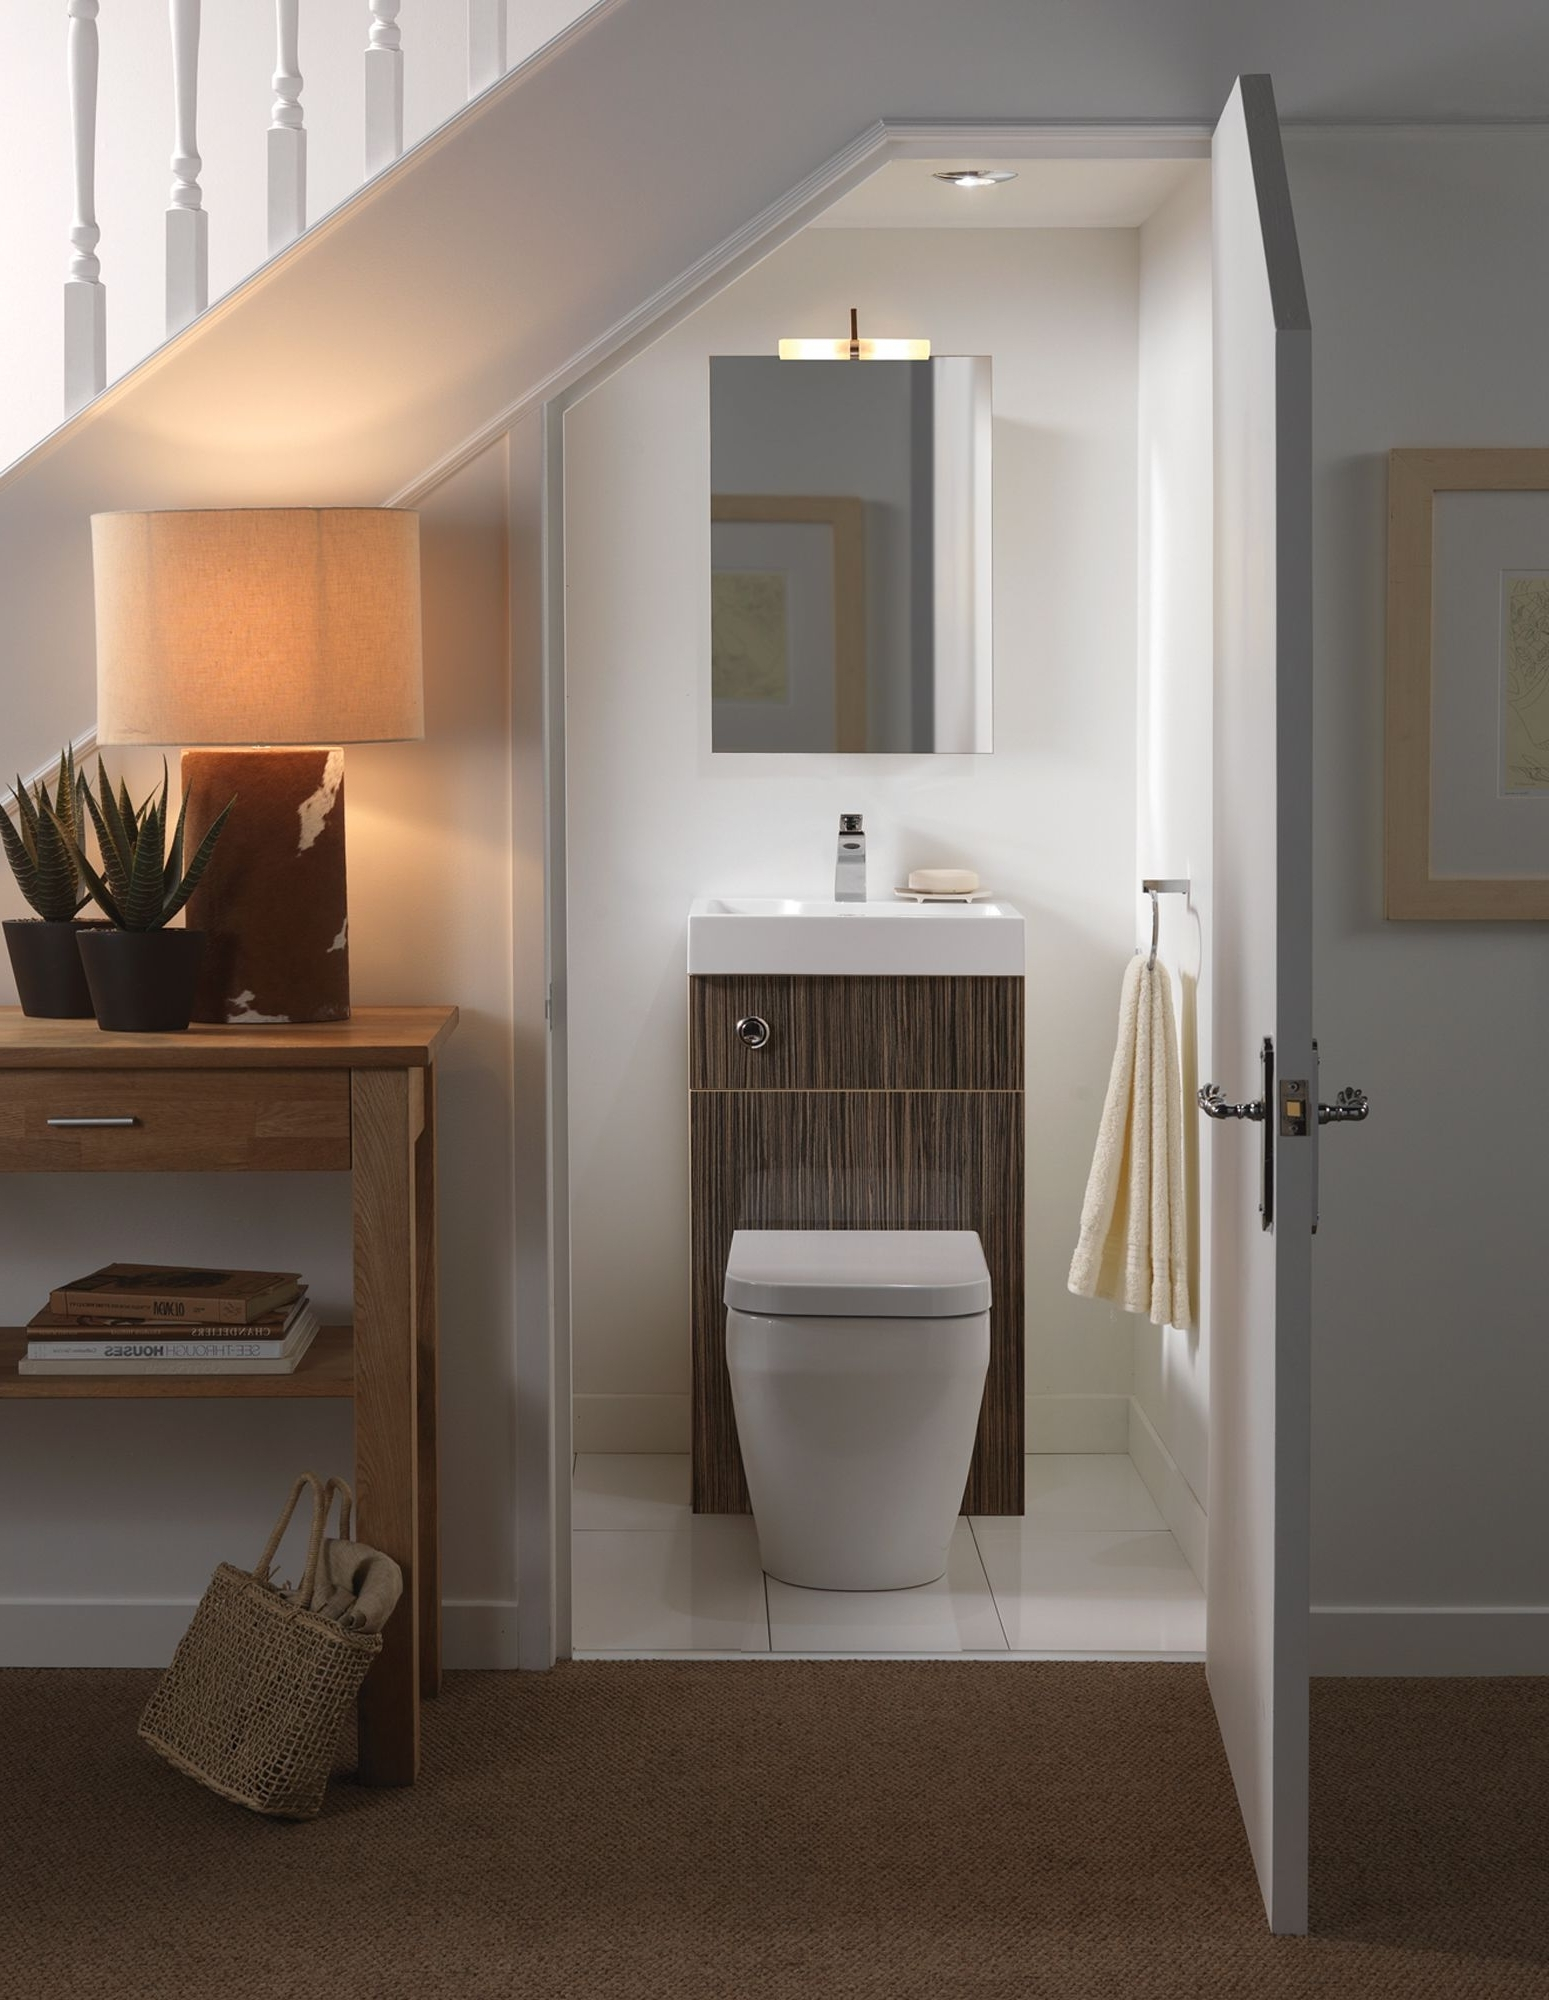 Under Stairs Bathroom With A Sink And Toilet Combined To Bathroom Under Stairs Design